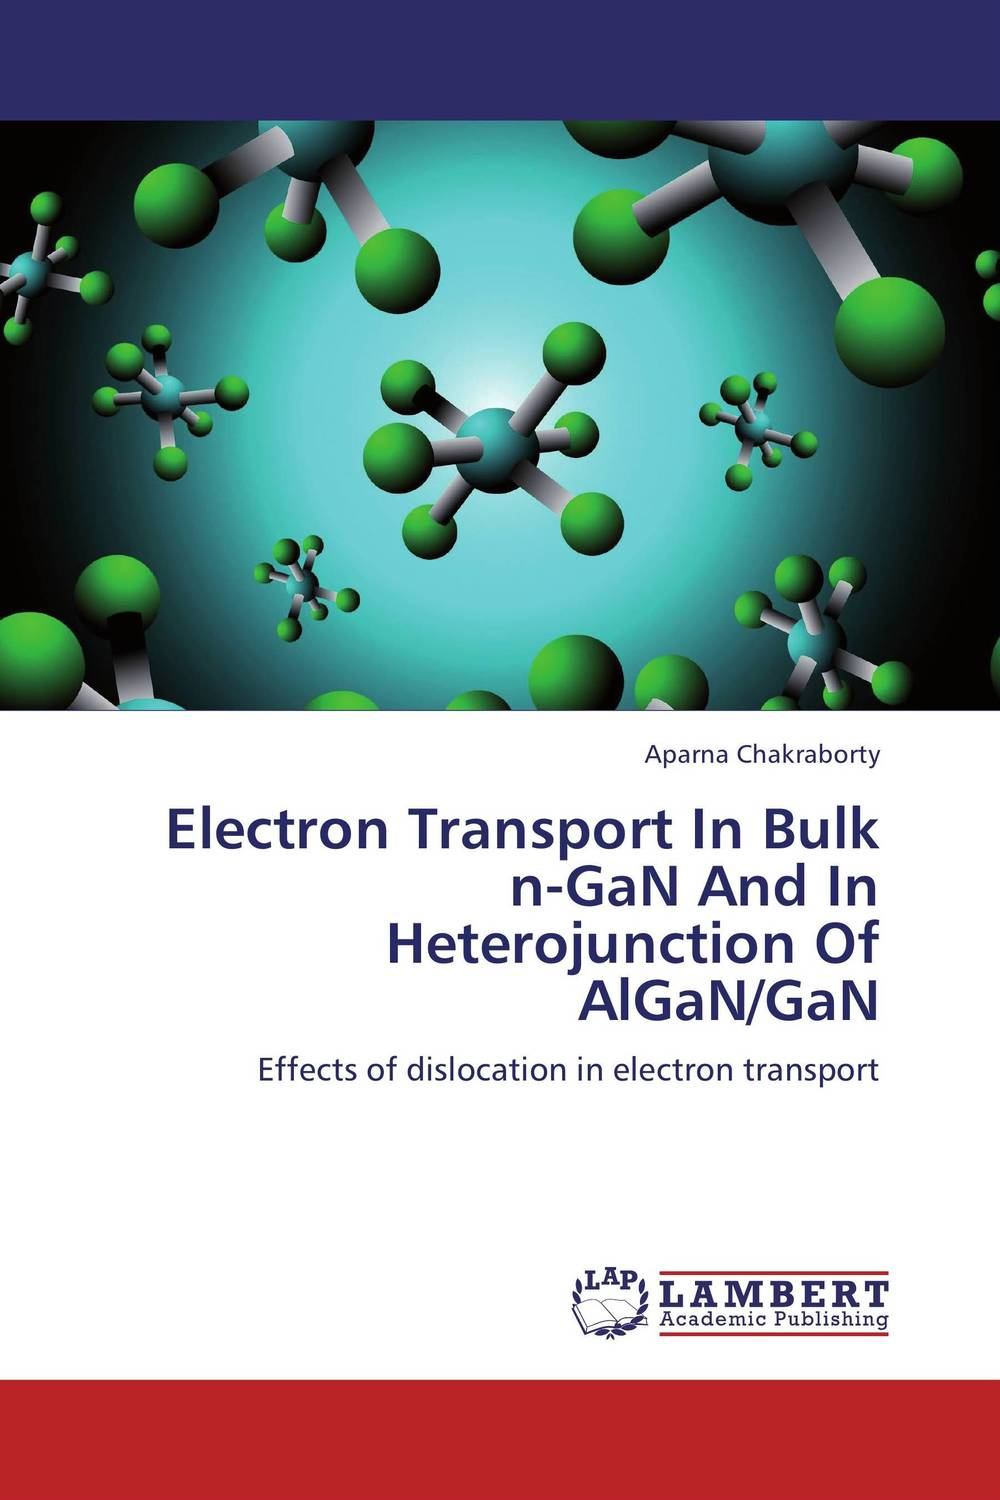 Electron Transport In Bulk n-GaN And In Heterojunction Of AlGaN/GaN the effect of model essays